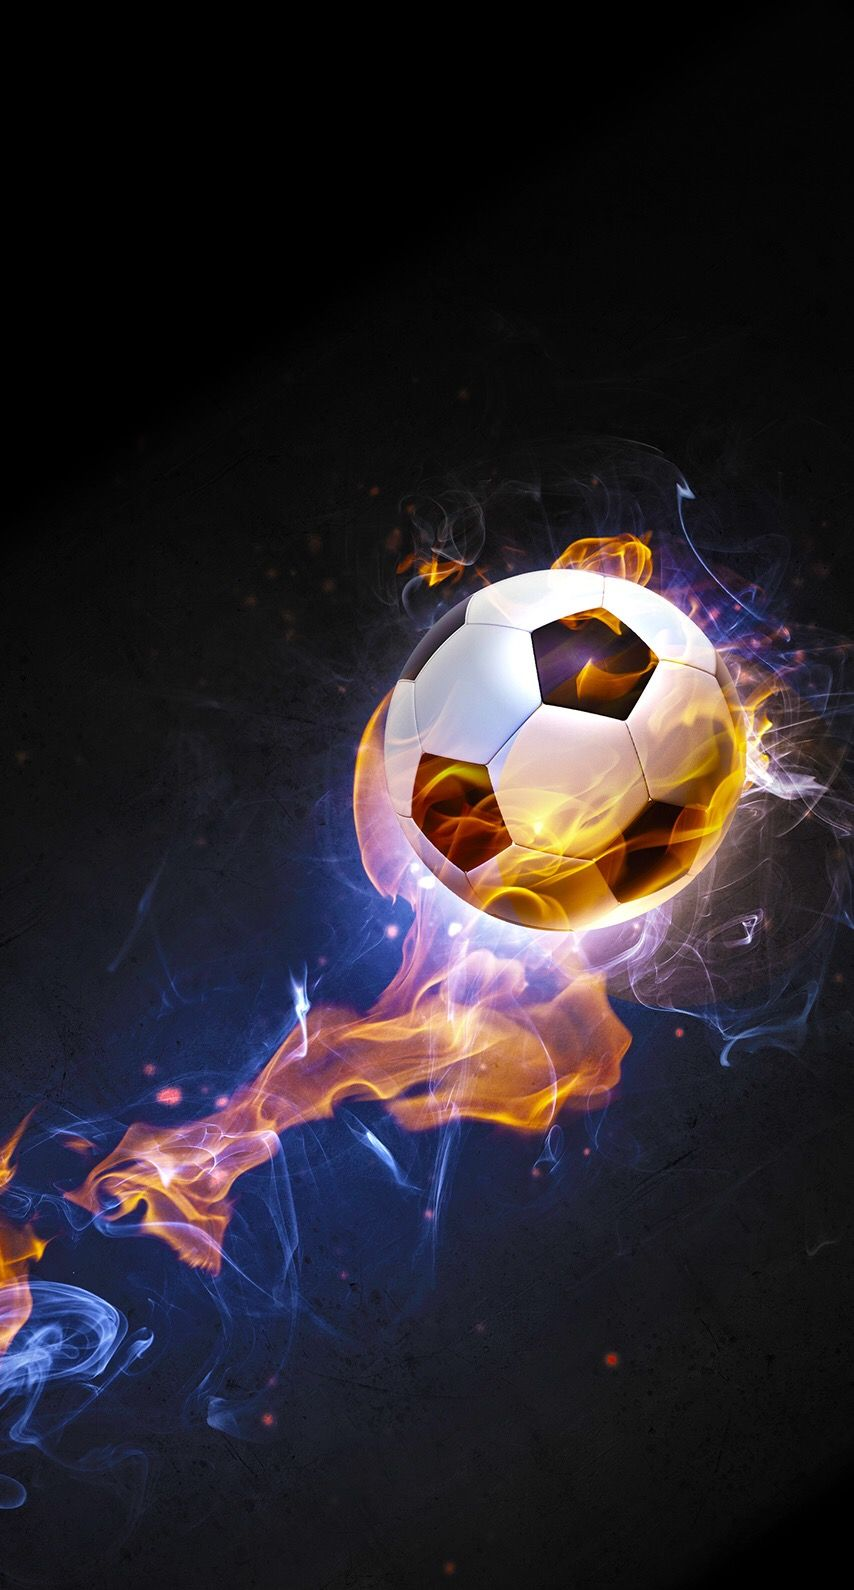 Hd Football Wallpapers Soccer Background Football Wallpaper Soccer Backgrounds Neymar Jr Wallpapers